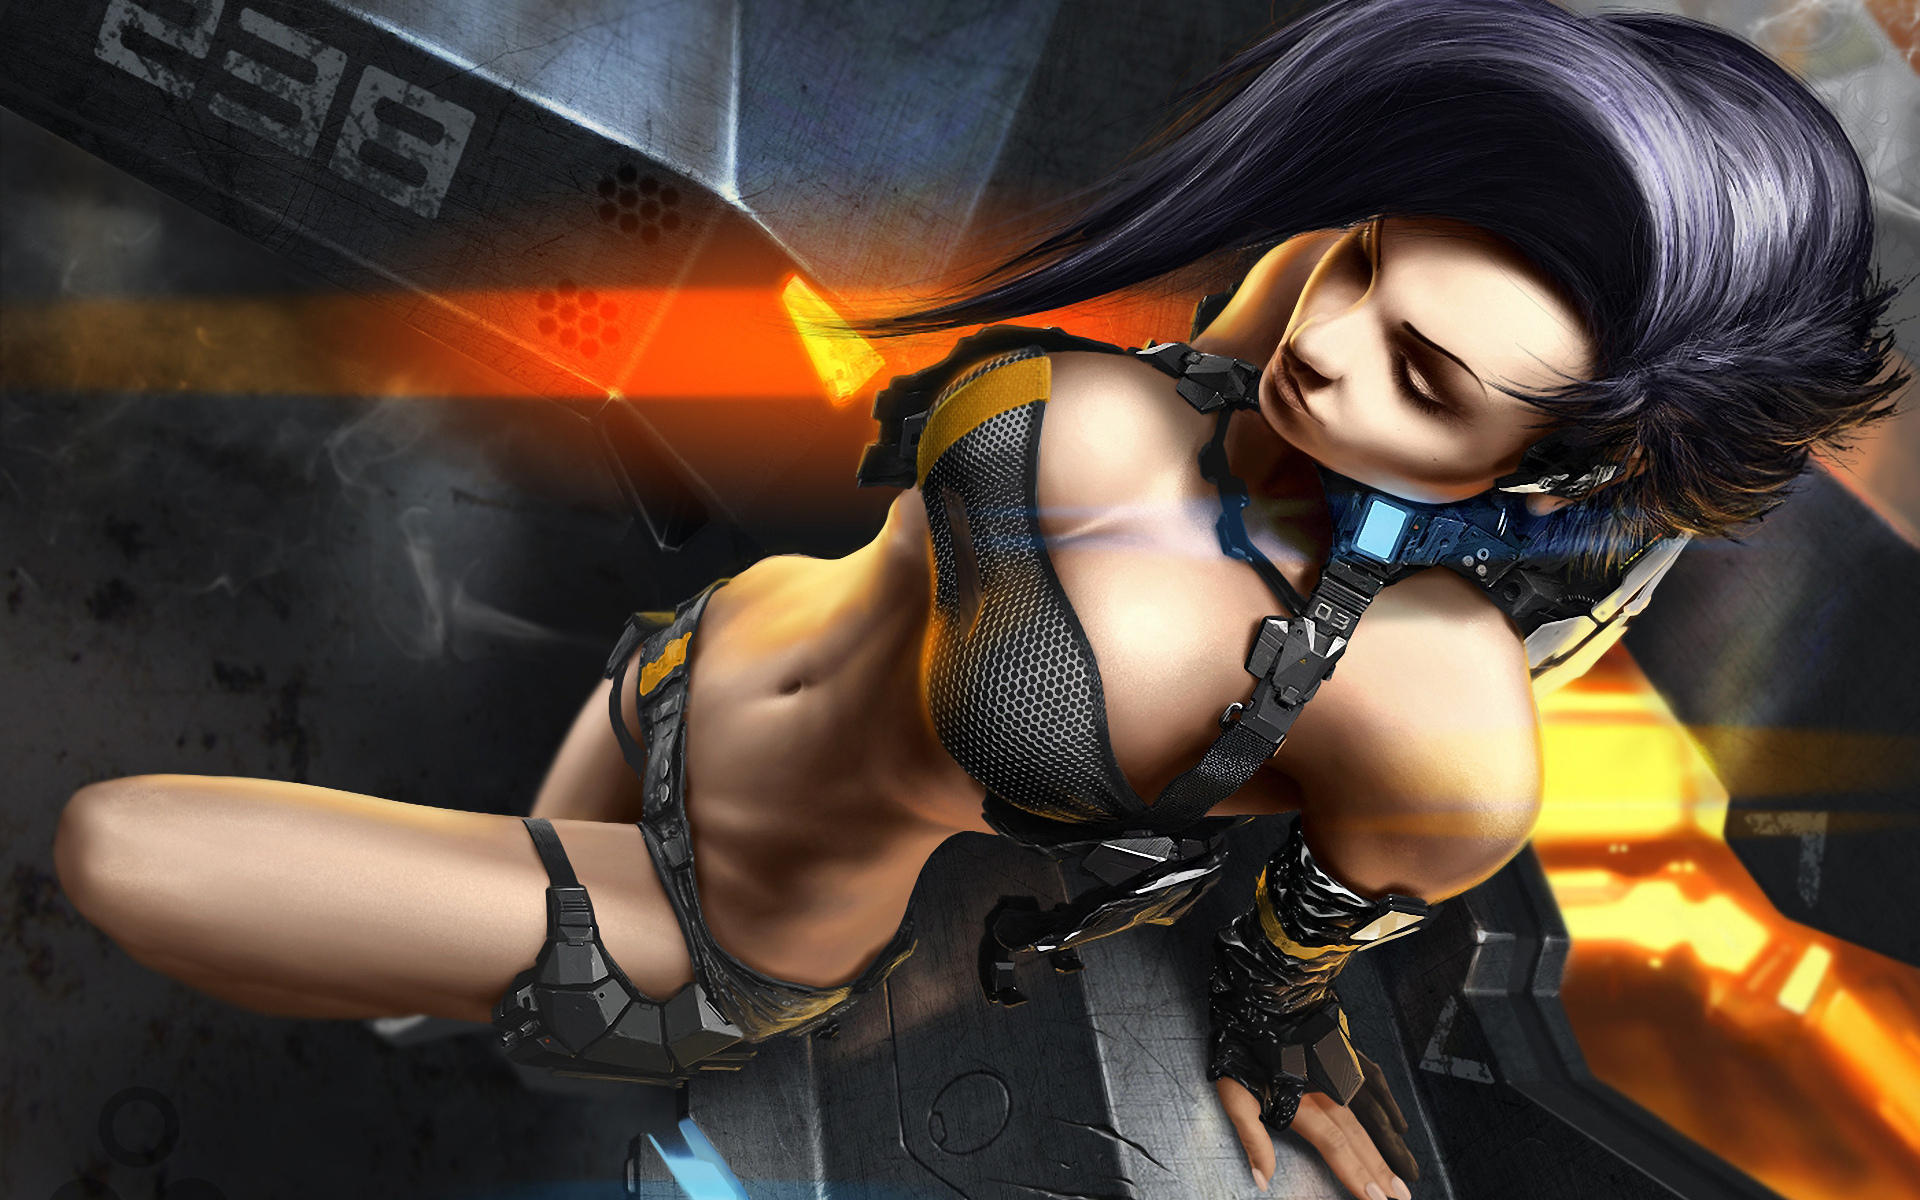 Ps3 nude girls wallpaper sexual pictures